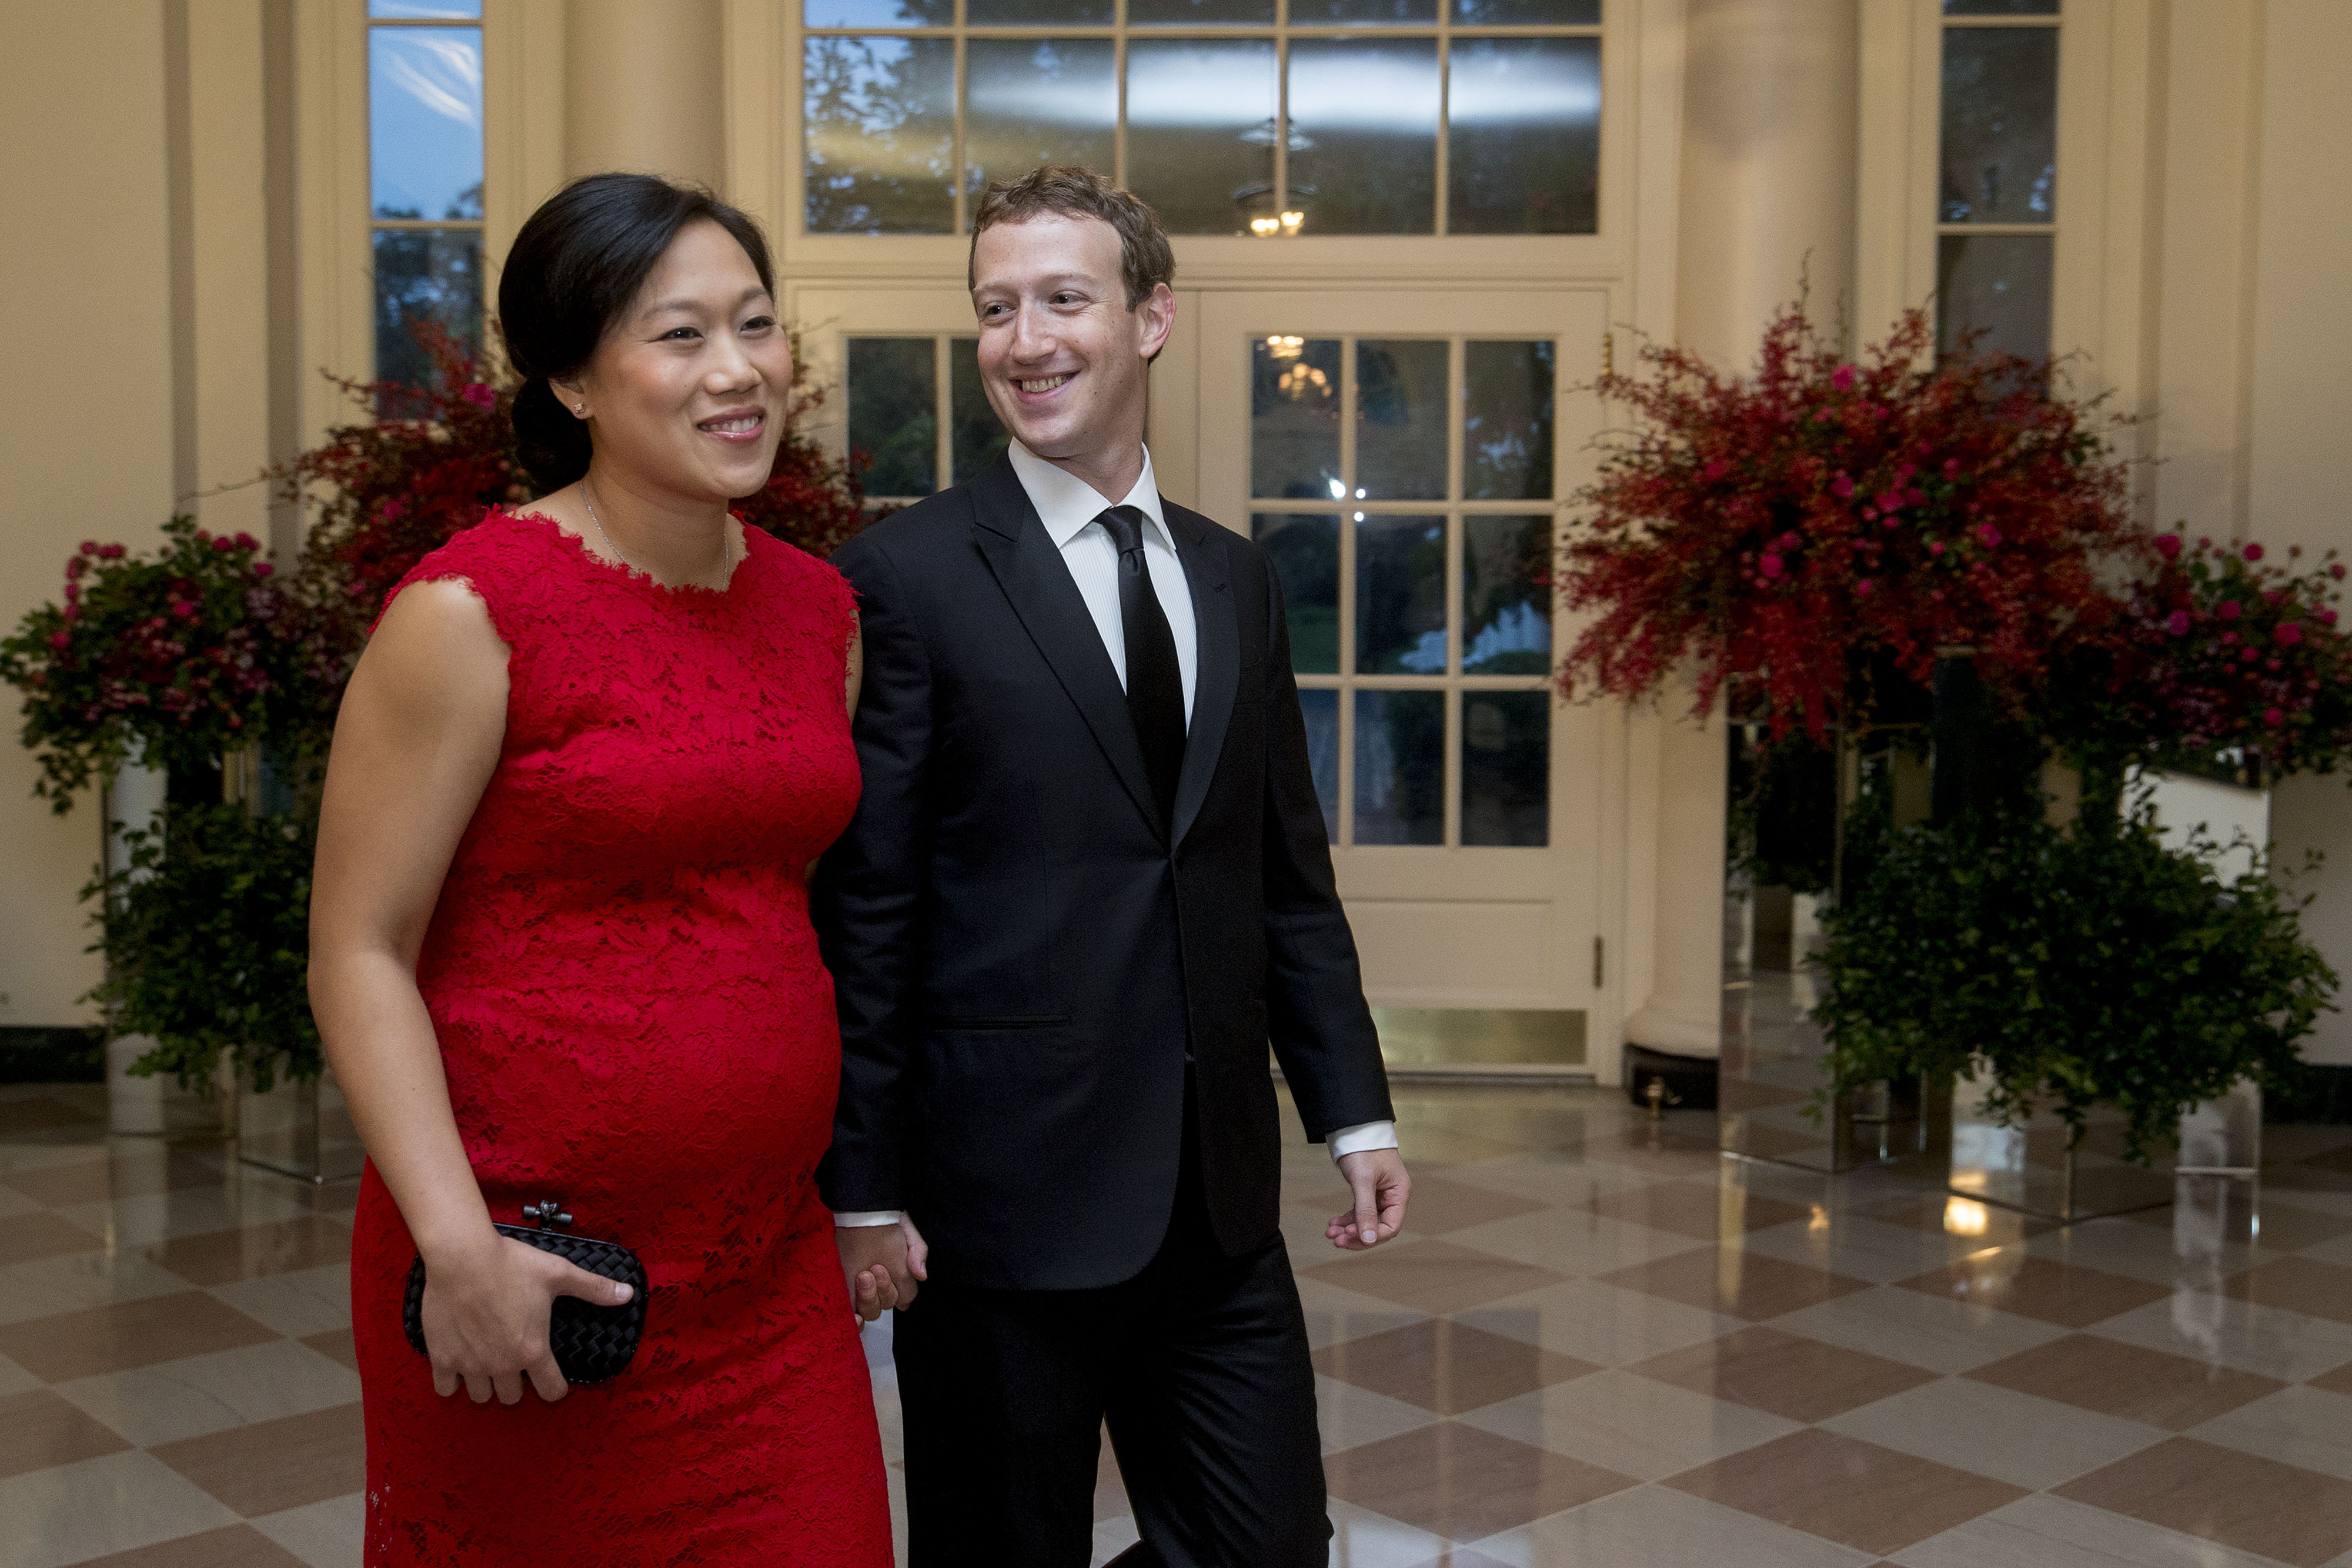 Priscilla Chan and Mark Zuckerberg arrive at a state dinner at the White House in Washington, D.C. on Sept. 25, 2015.